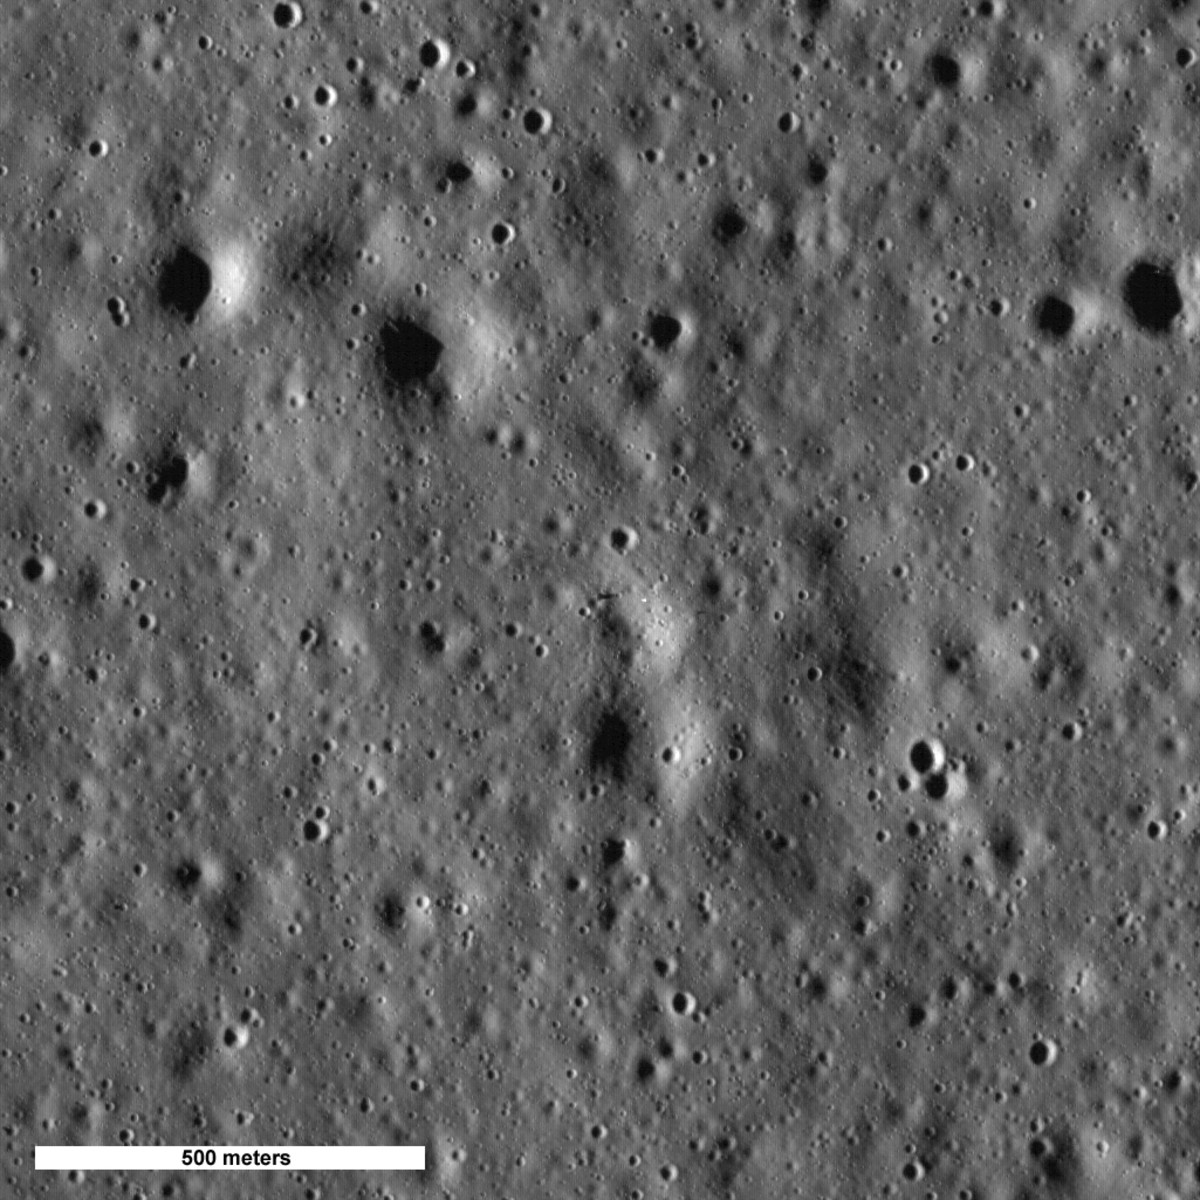 July 2009: First image of Apollo 15 site. Wait, where is it?